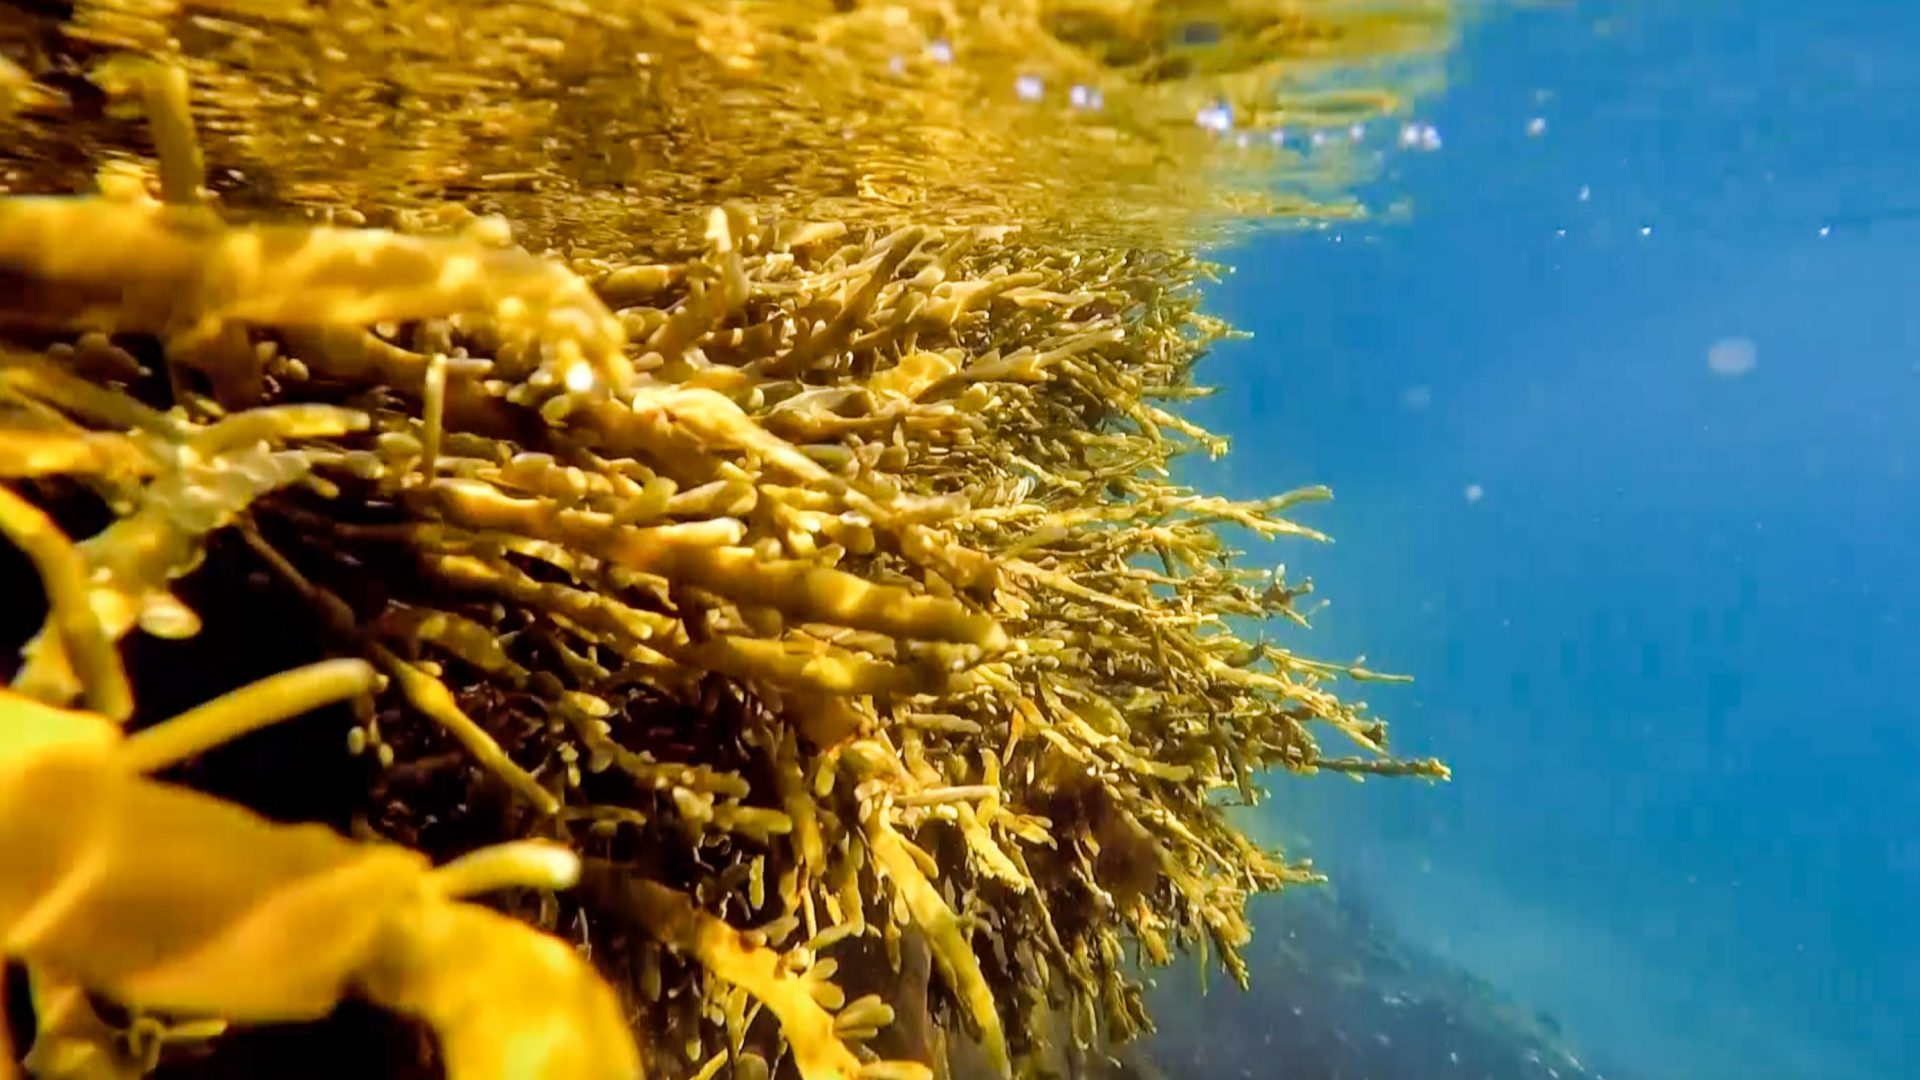 The power of nature: Algae is collected to make beer.